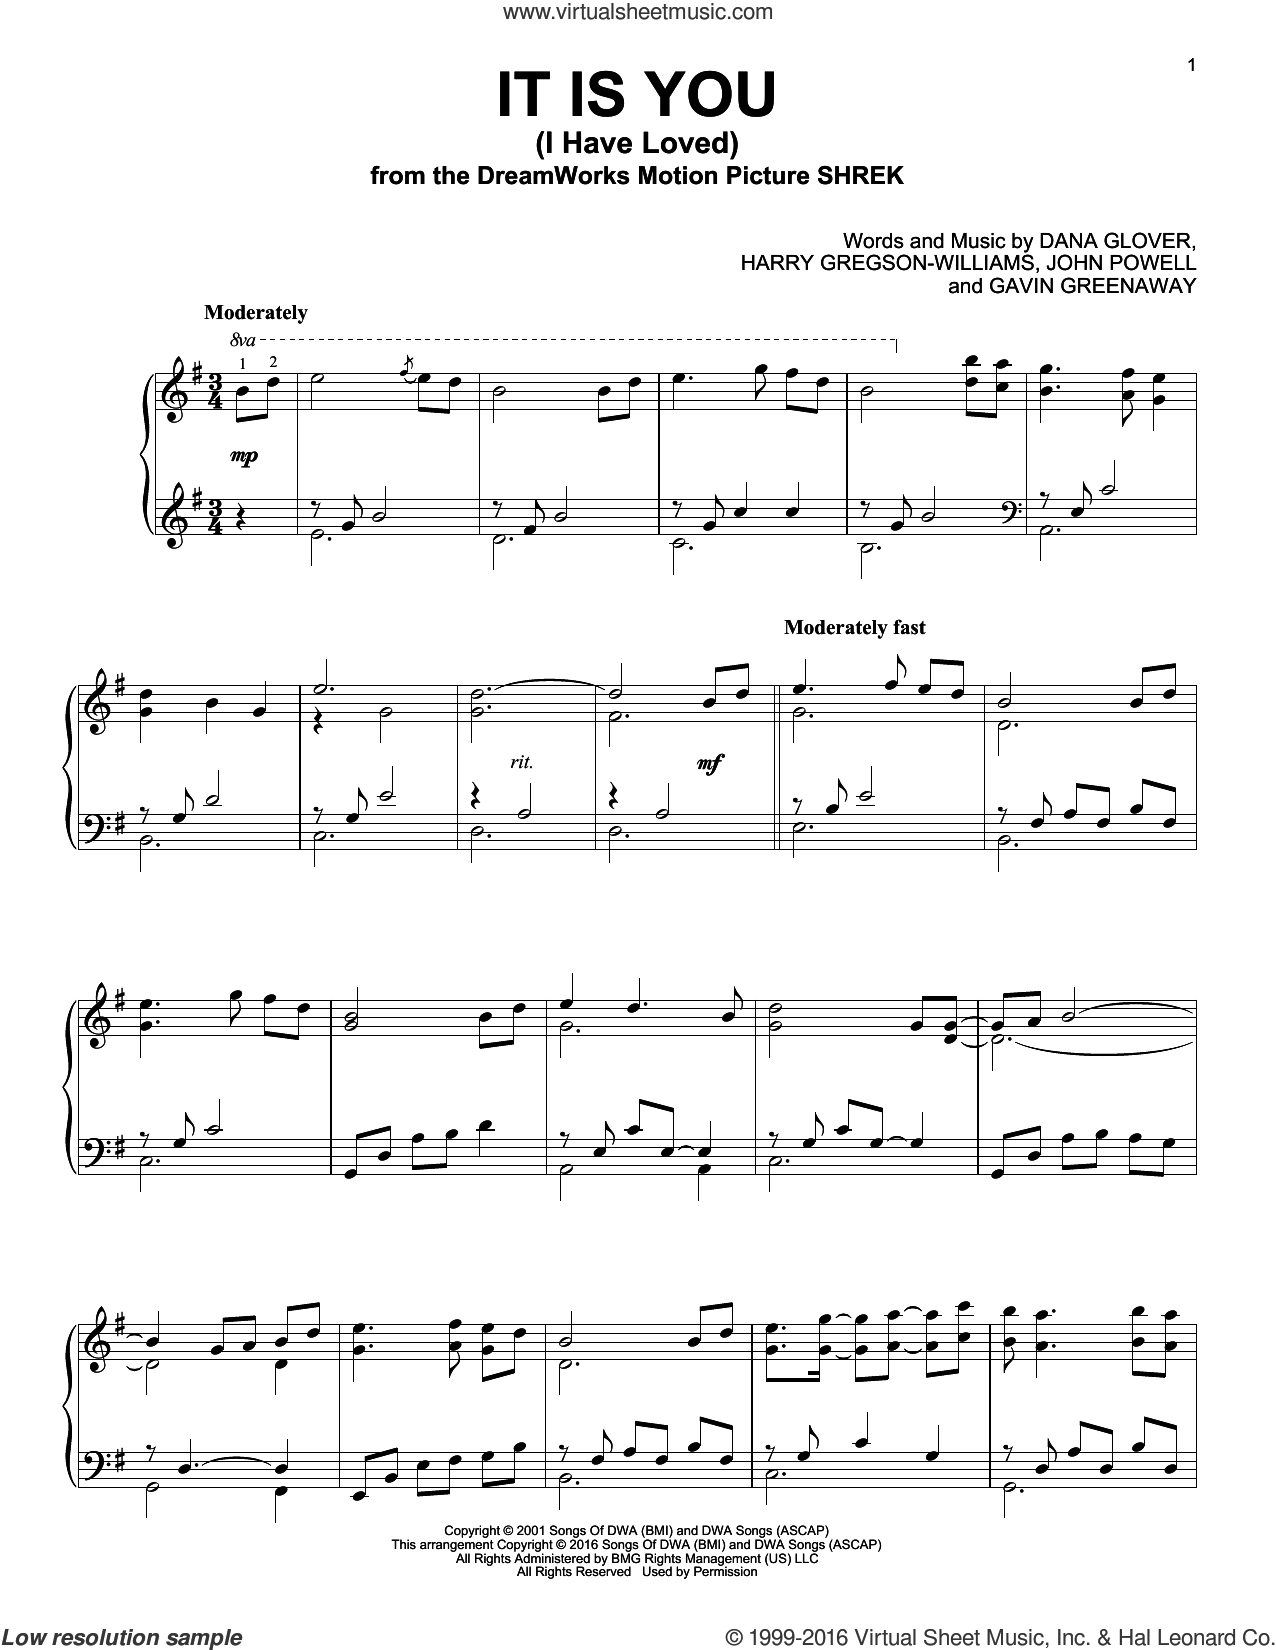 It Is You (I Have Loved), (intermediate) sheet music for piano solo by Dana Glover, Gavin Greenaway, Harry Gregson-Williams and John Powell, wedding score, intermediate. Score Image Preview.